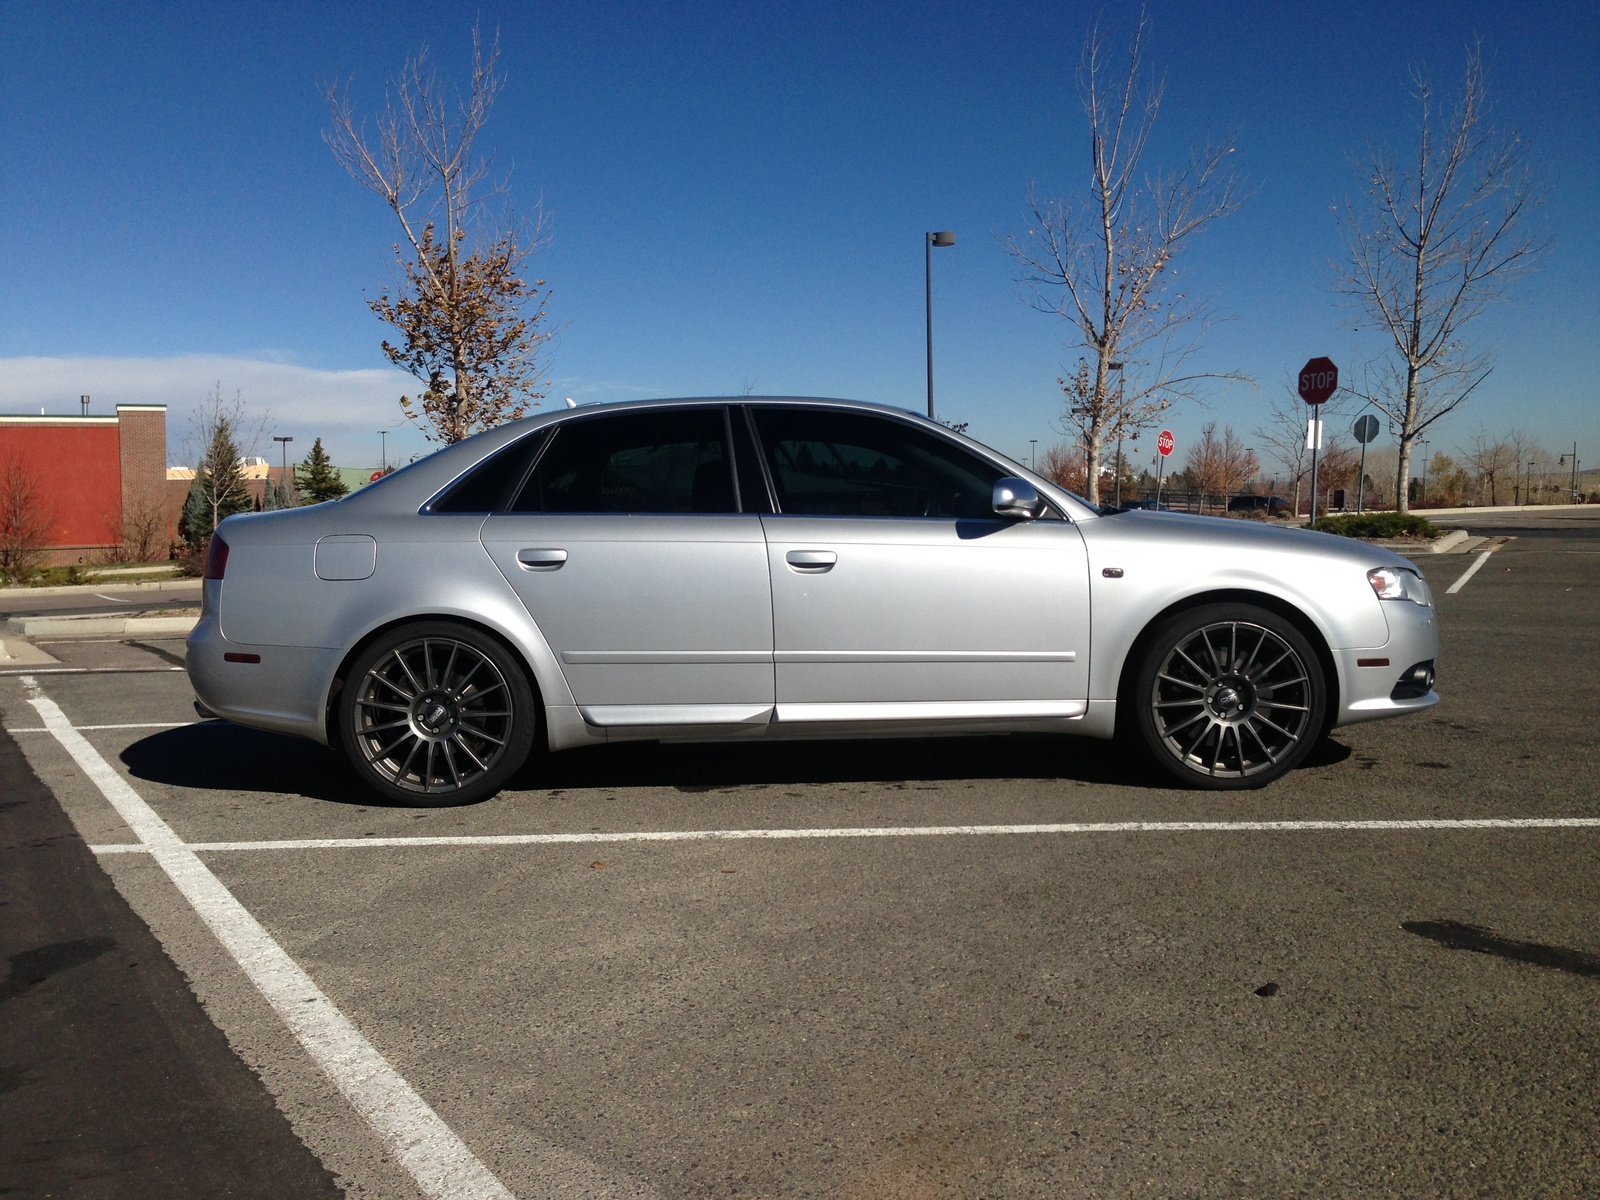 Audi s4 0 to 60 2014 16